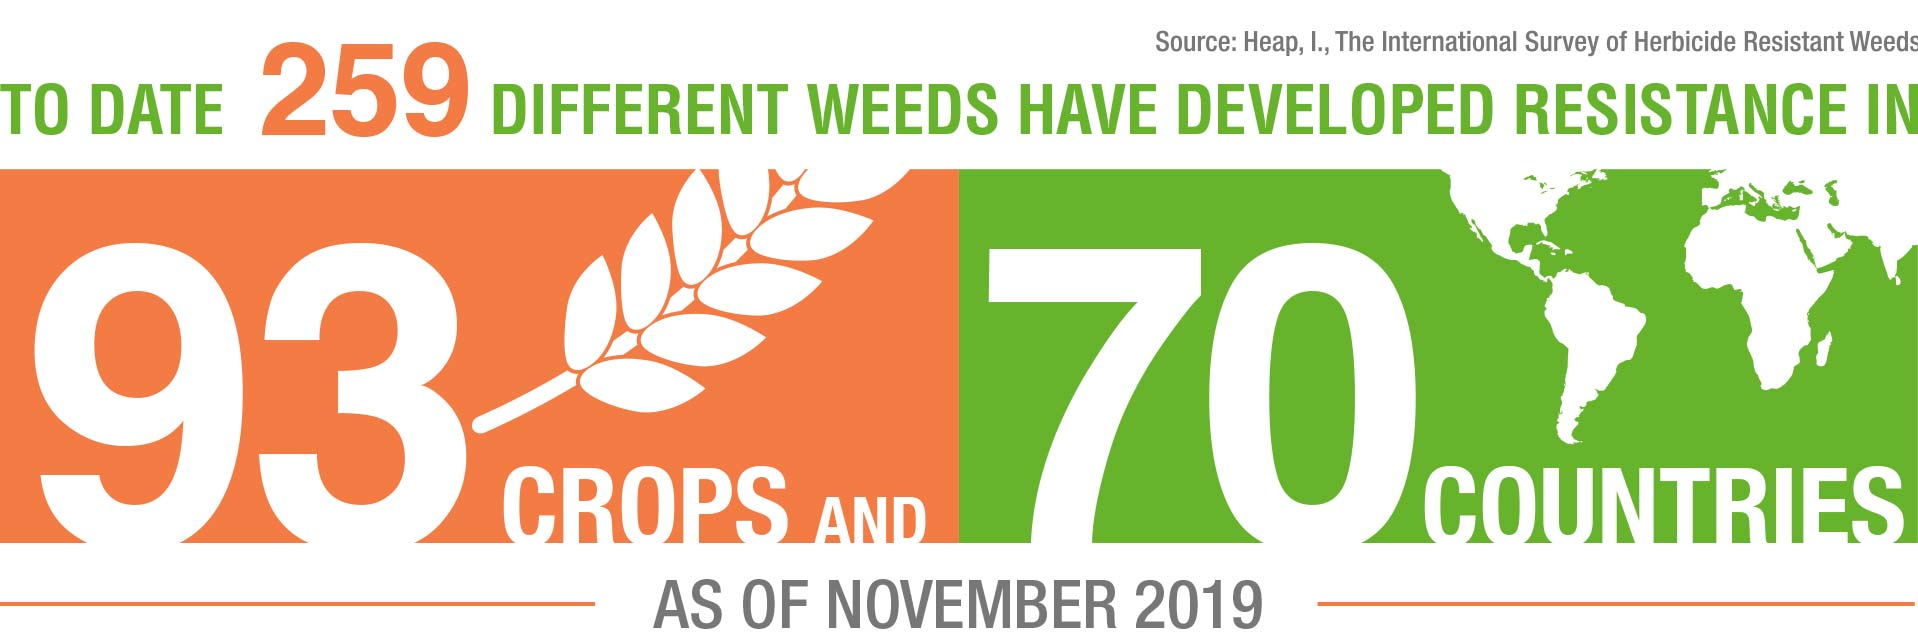 259 different weeds have developed resistance in 93 crops.